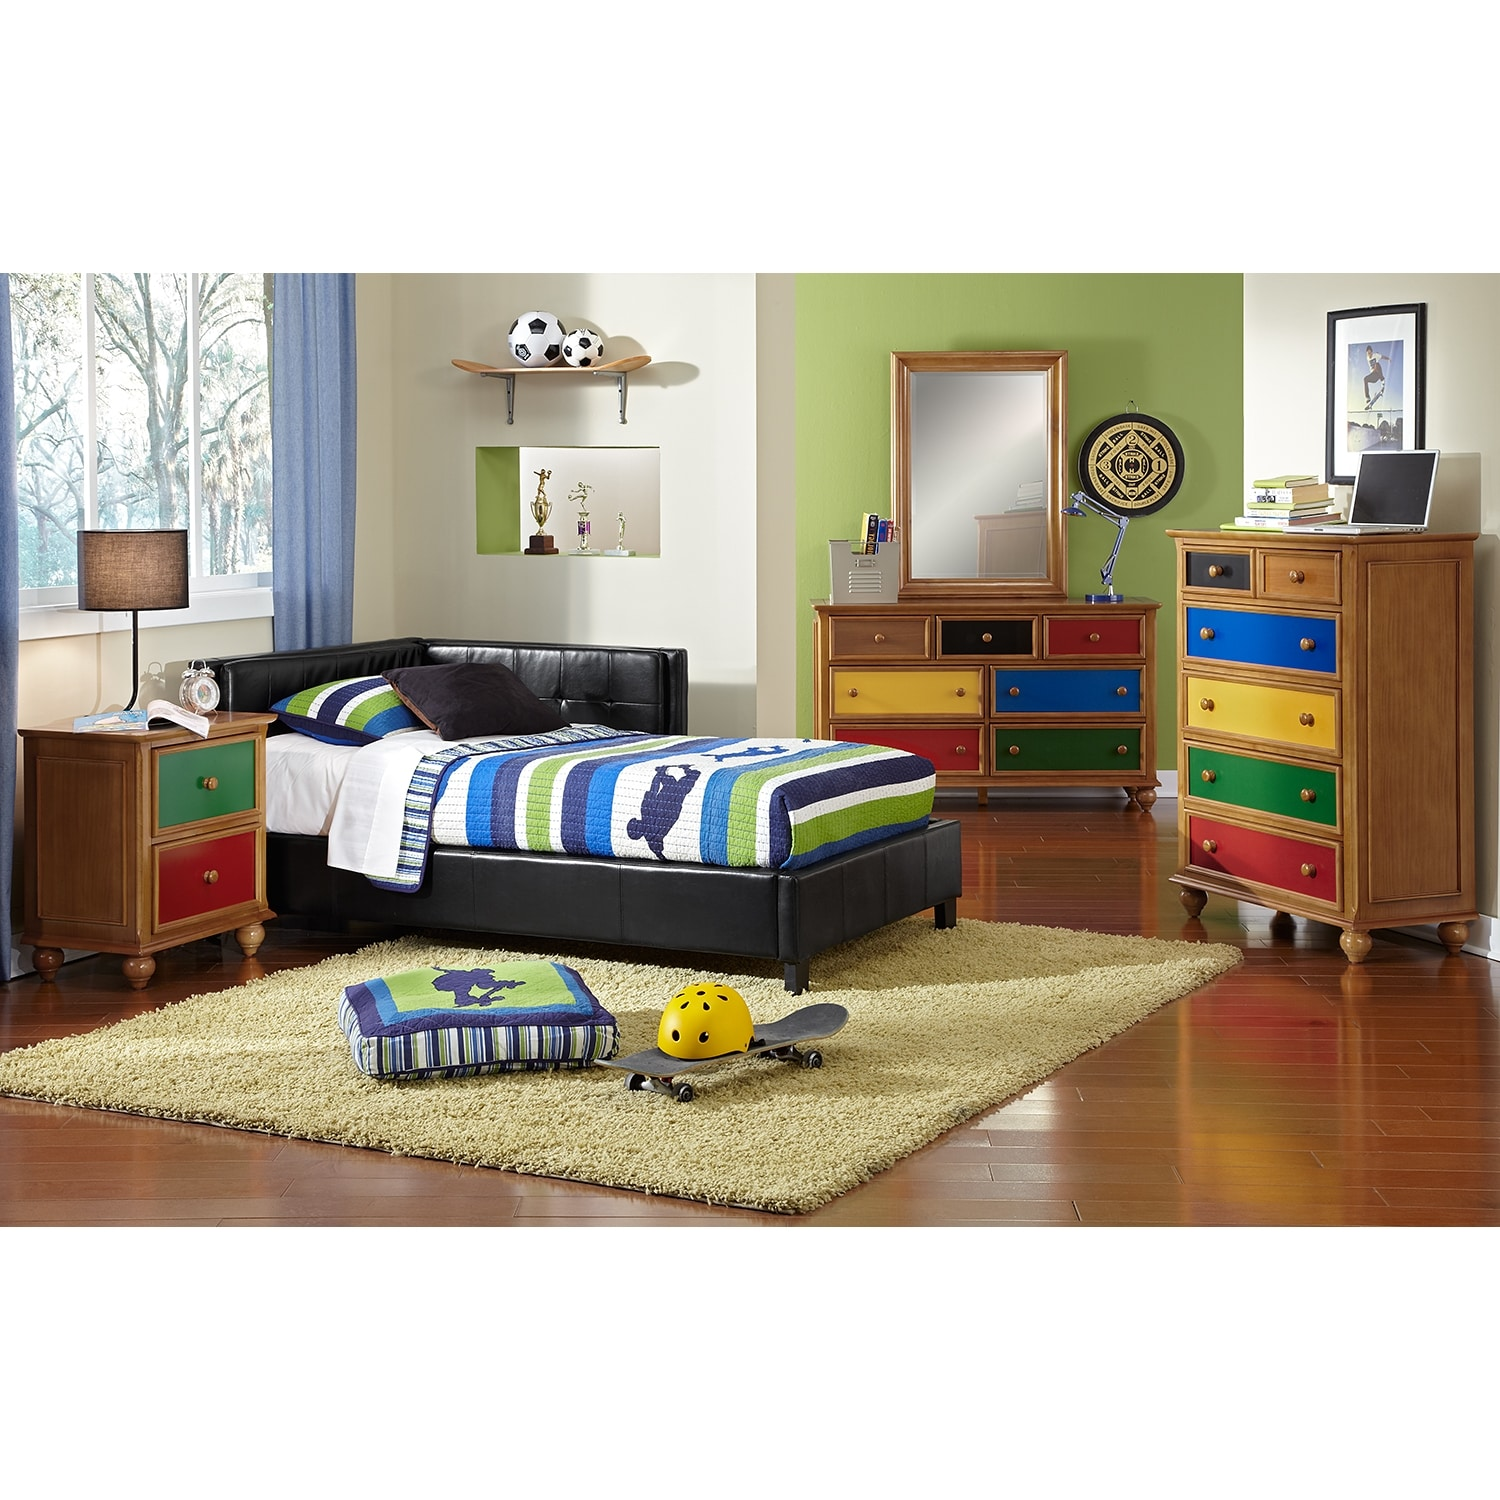 Image Result For Twin Corner Bed Units